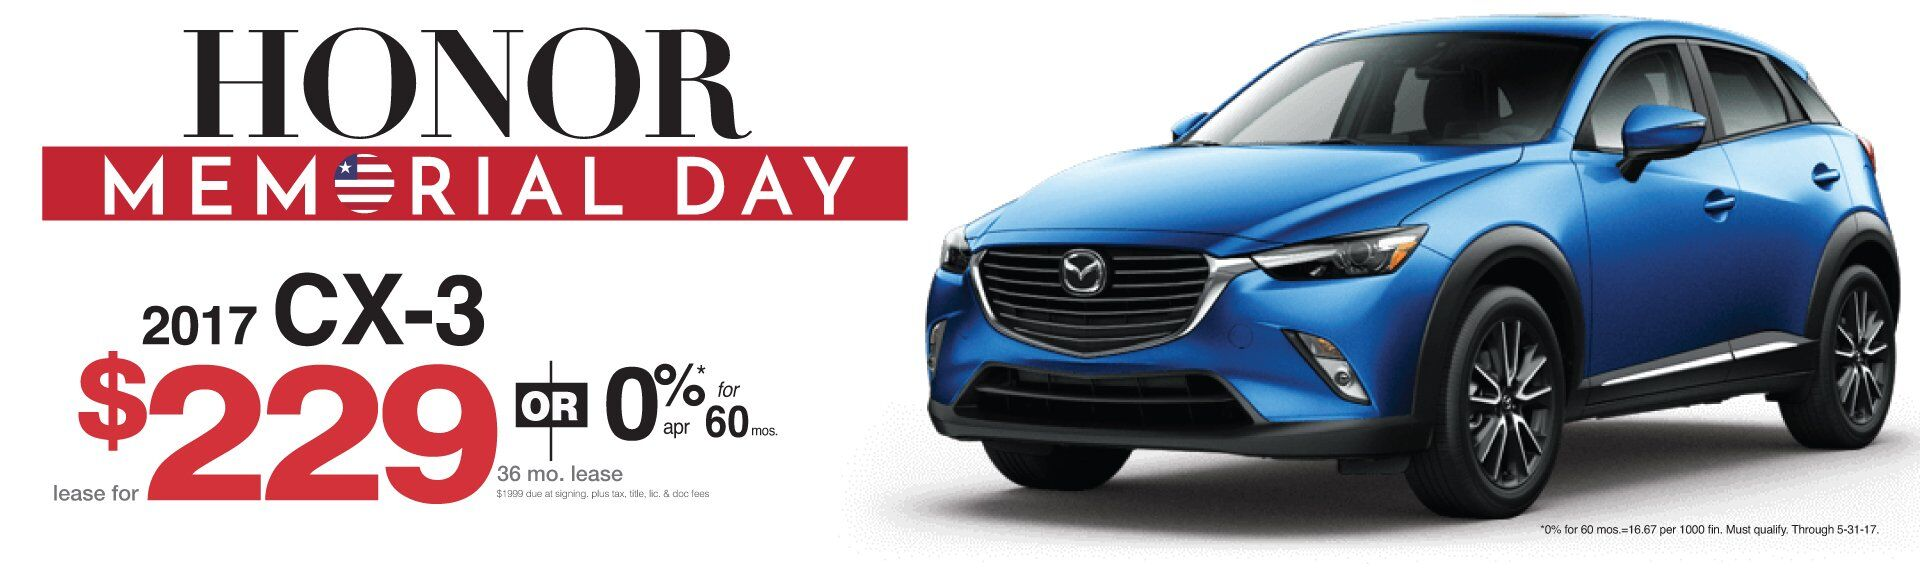 Memorial Day Savings All Month Long On Mazda CX-3